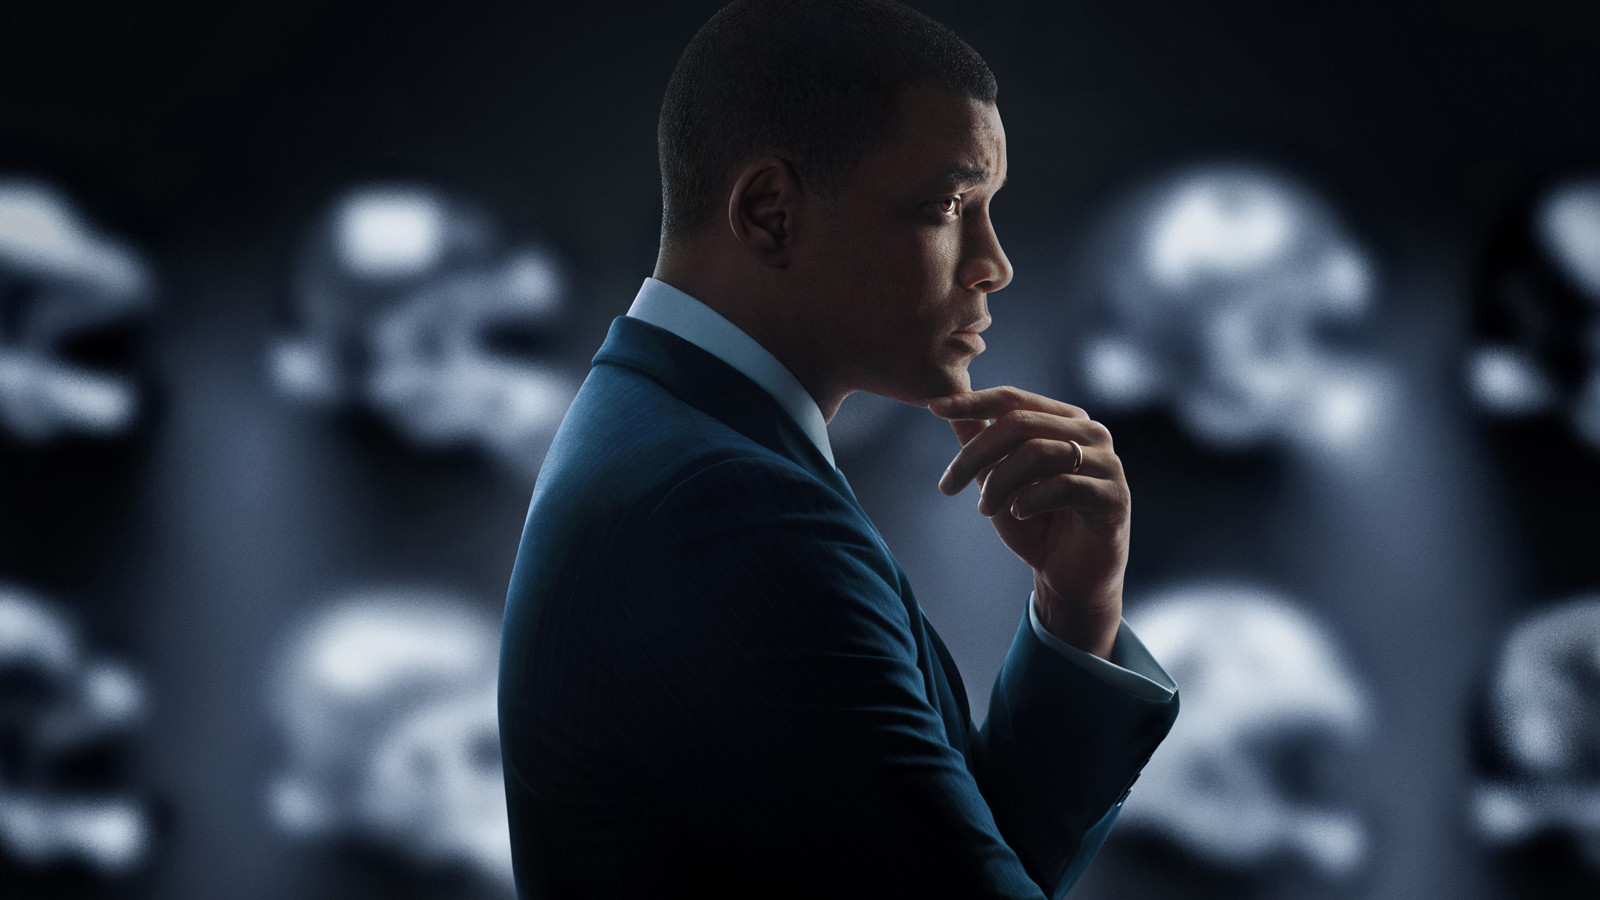 Brain health in elite sport is starting to get the air time it deserves. Thanks to Will Smith's  Concussion  and other mainstream mediums, 2017 promises to keep the momentum going.